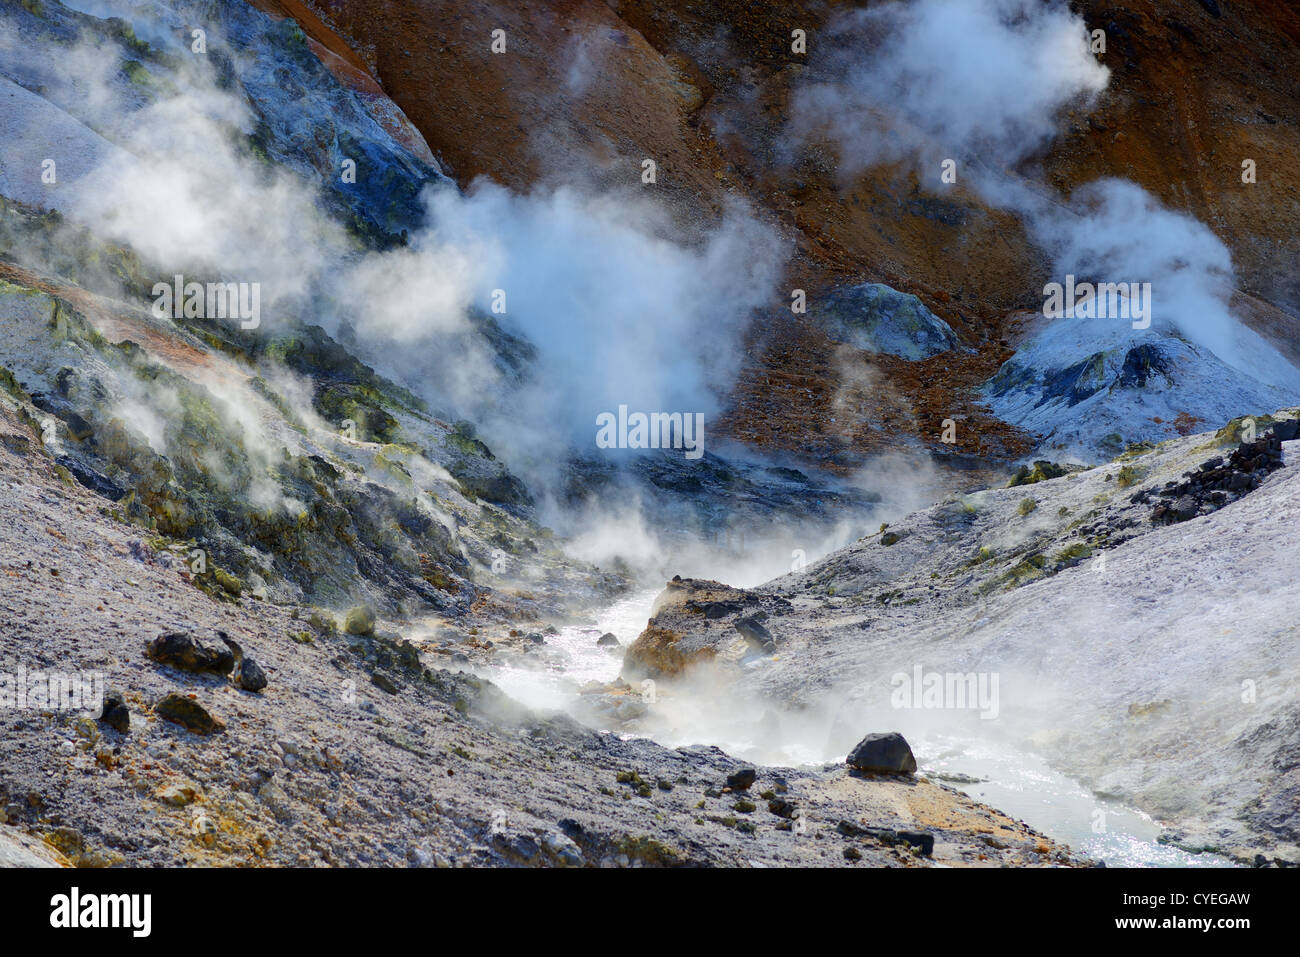 Steam rises from Jigokudani (Hell Valley) in Noboribetsu, Hokkaido. - Stock Image